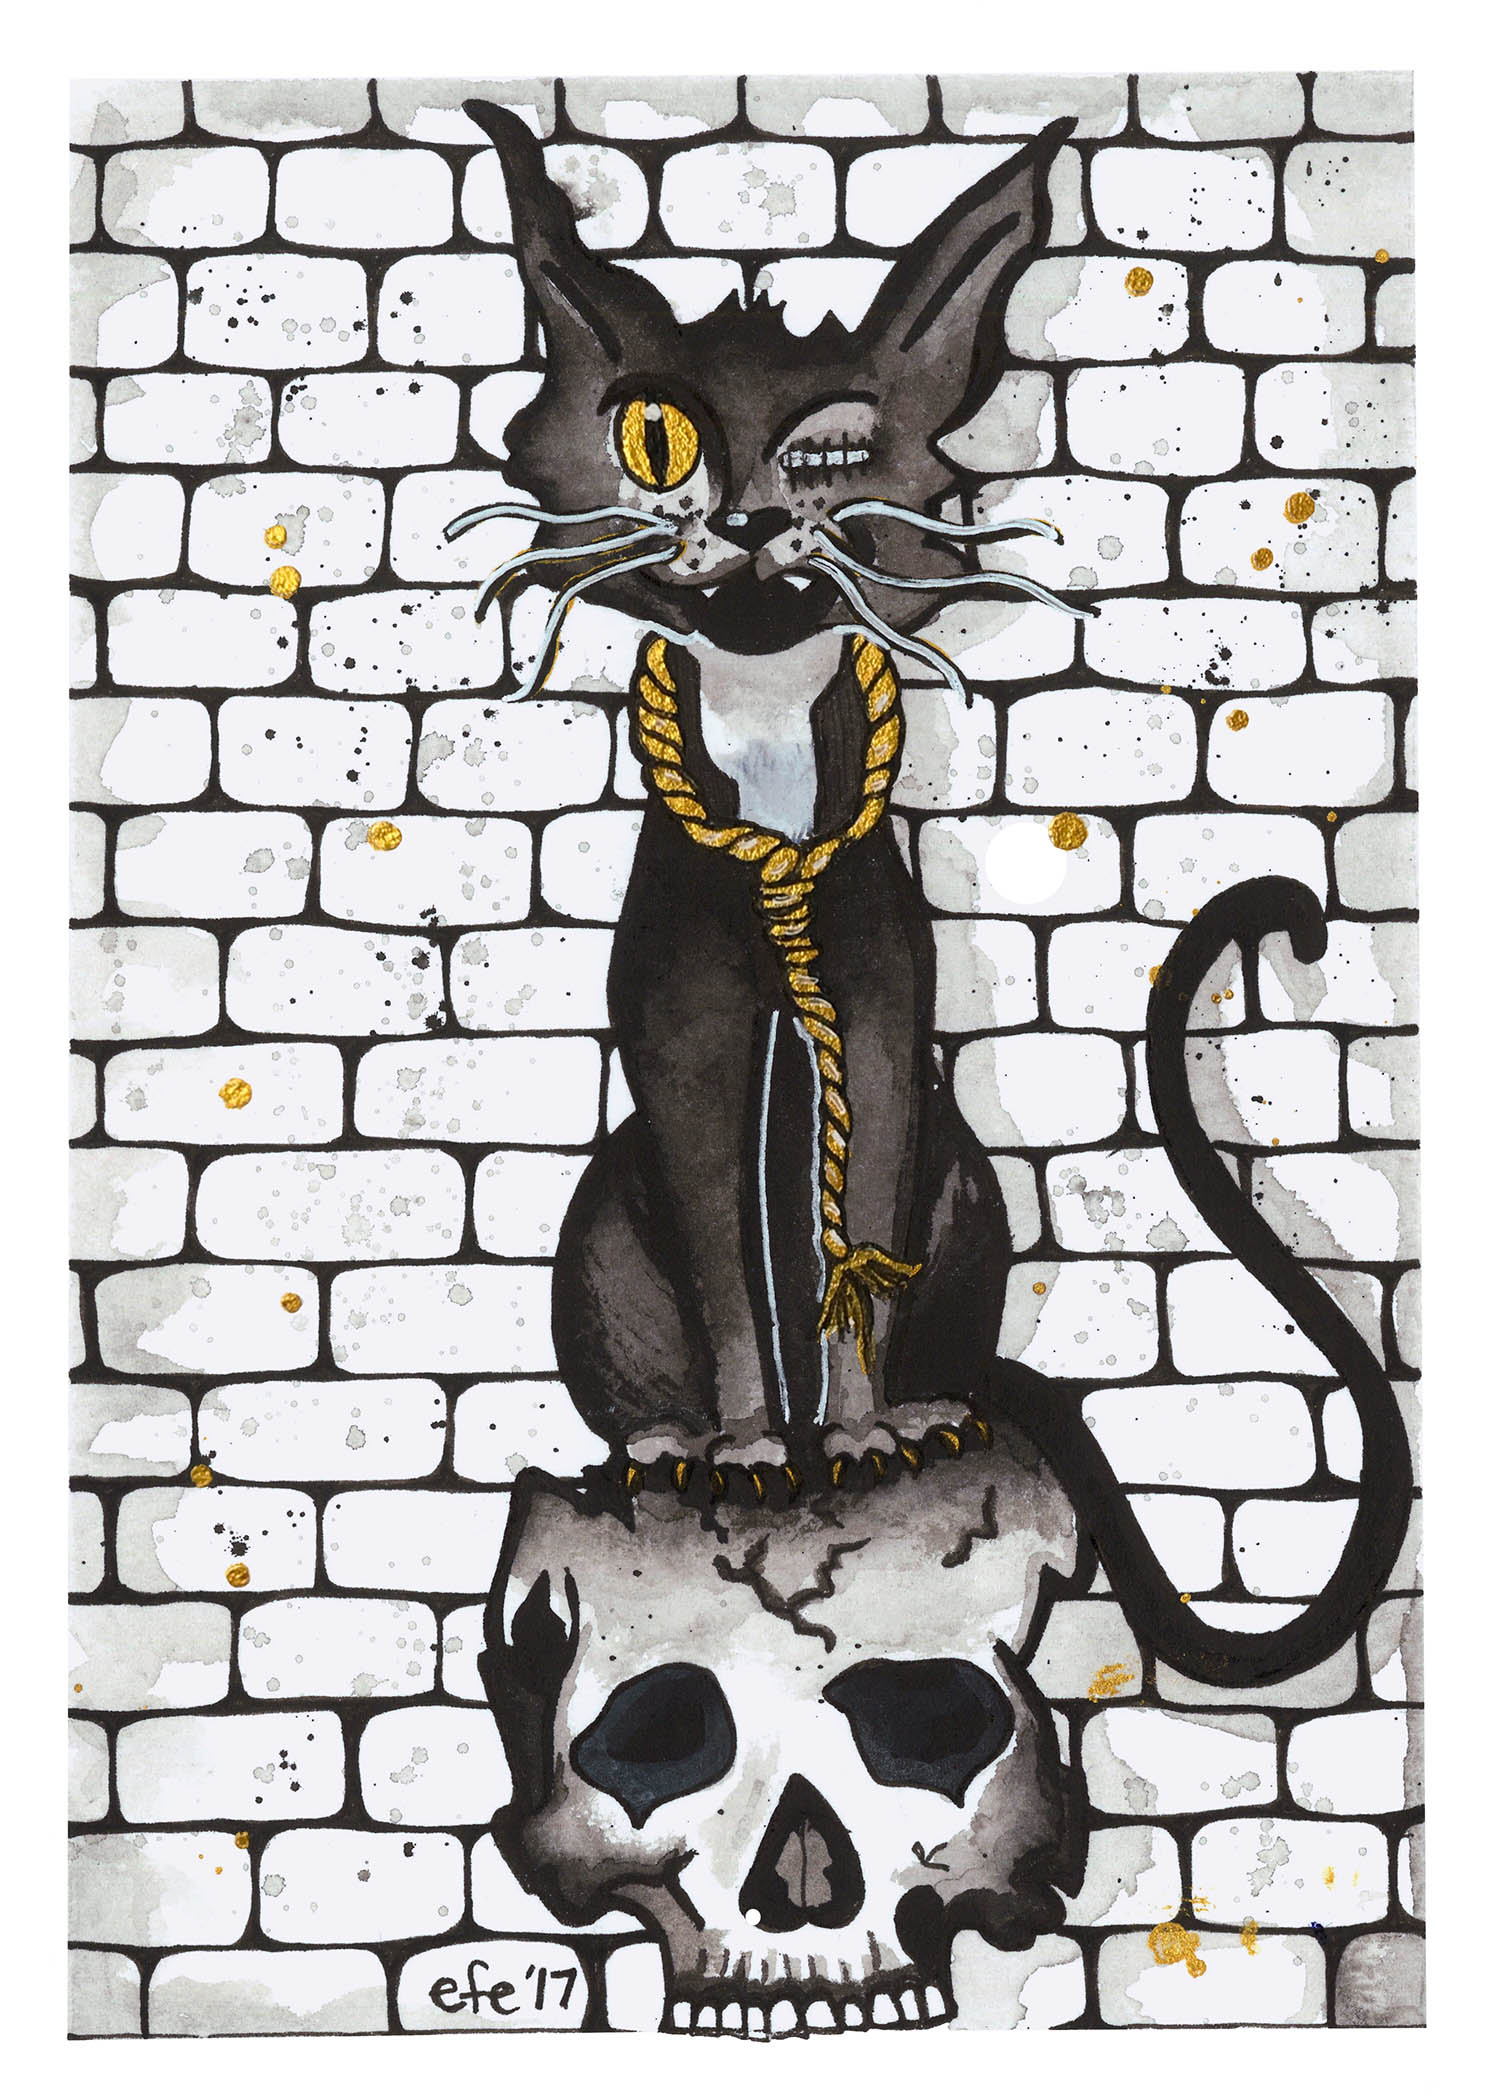 Day 02 - The Black Cat